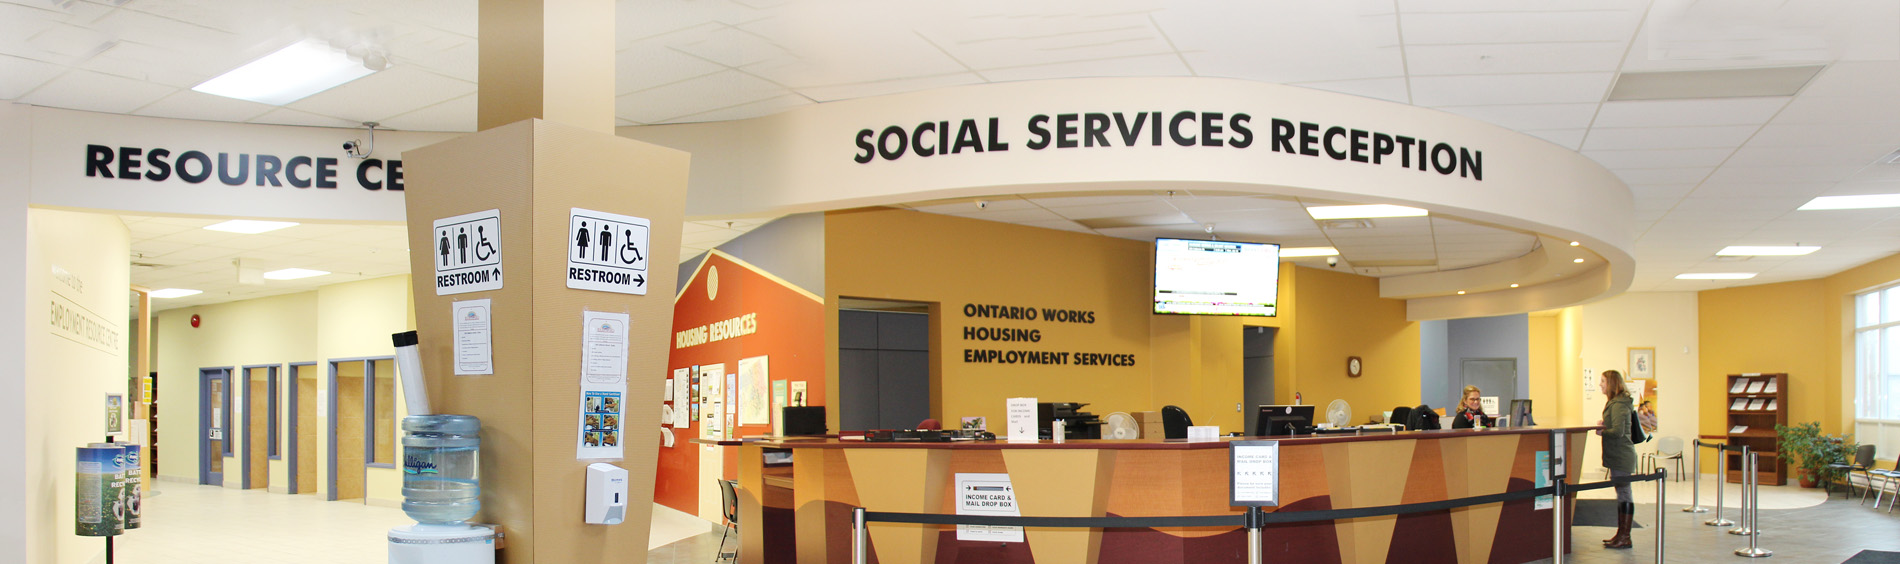 Health and Human Services front desk